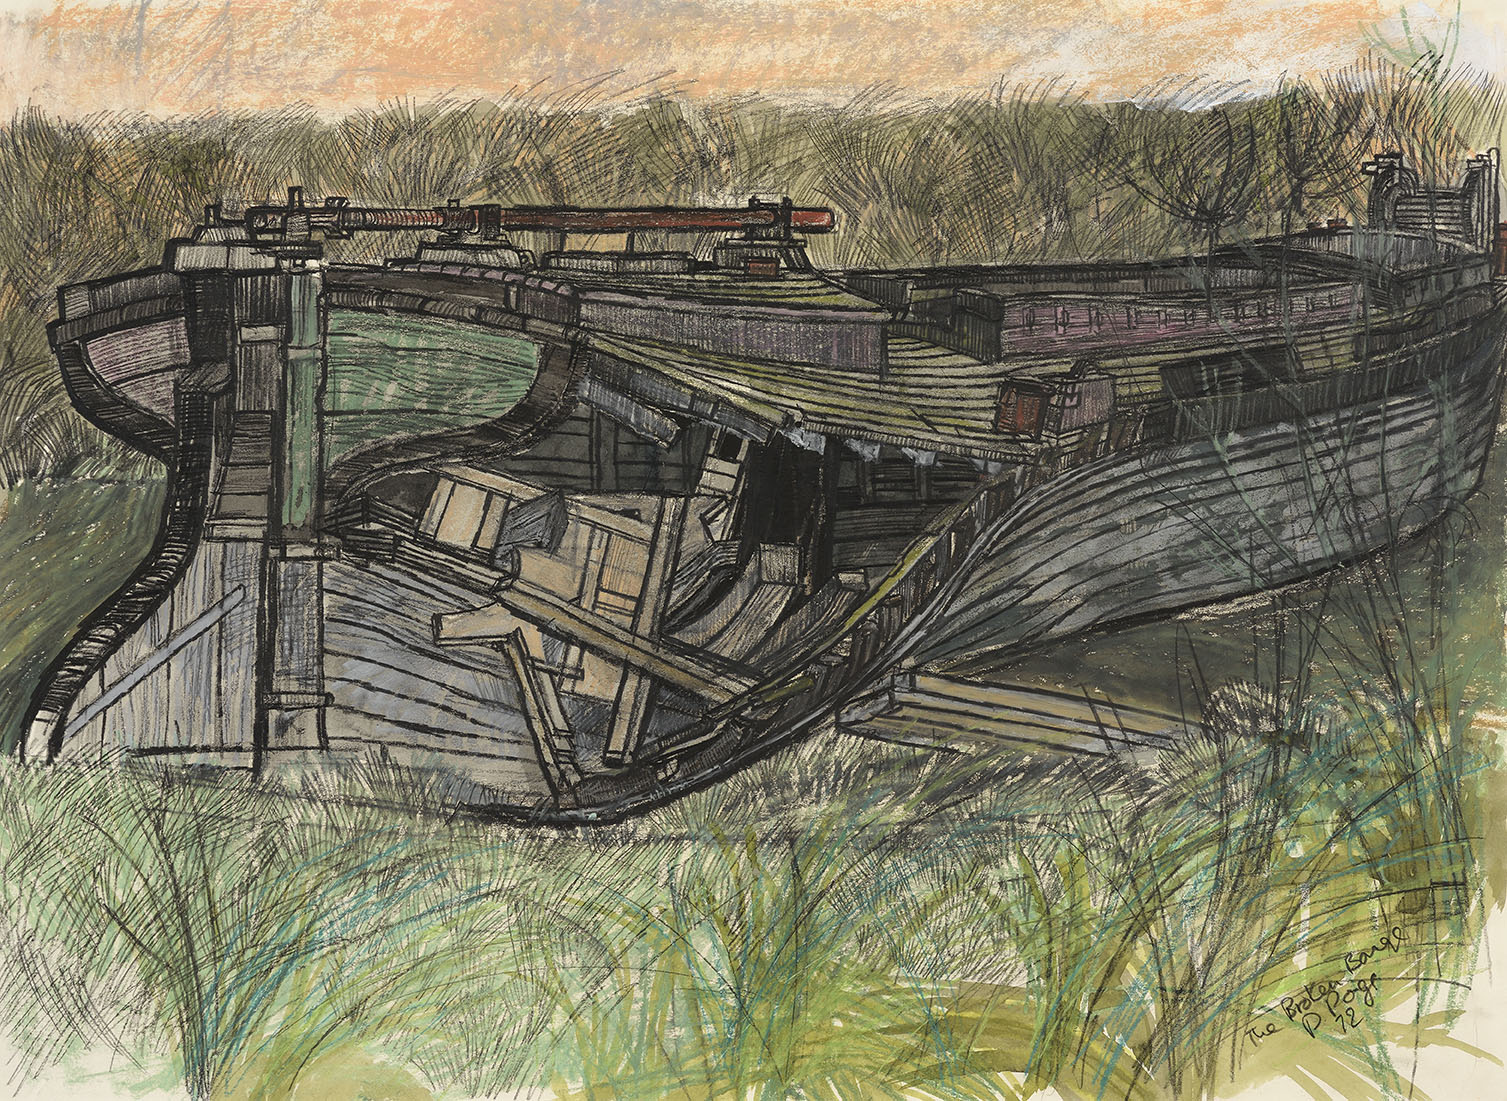 Dione Page RWA, (b. 1936)    The Broken Barge,  1972, Watercolour and graphite on paper, 21 ¼ x 29 ½ in, Signed  [CAS 21] Acquired in 1973